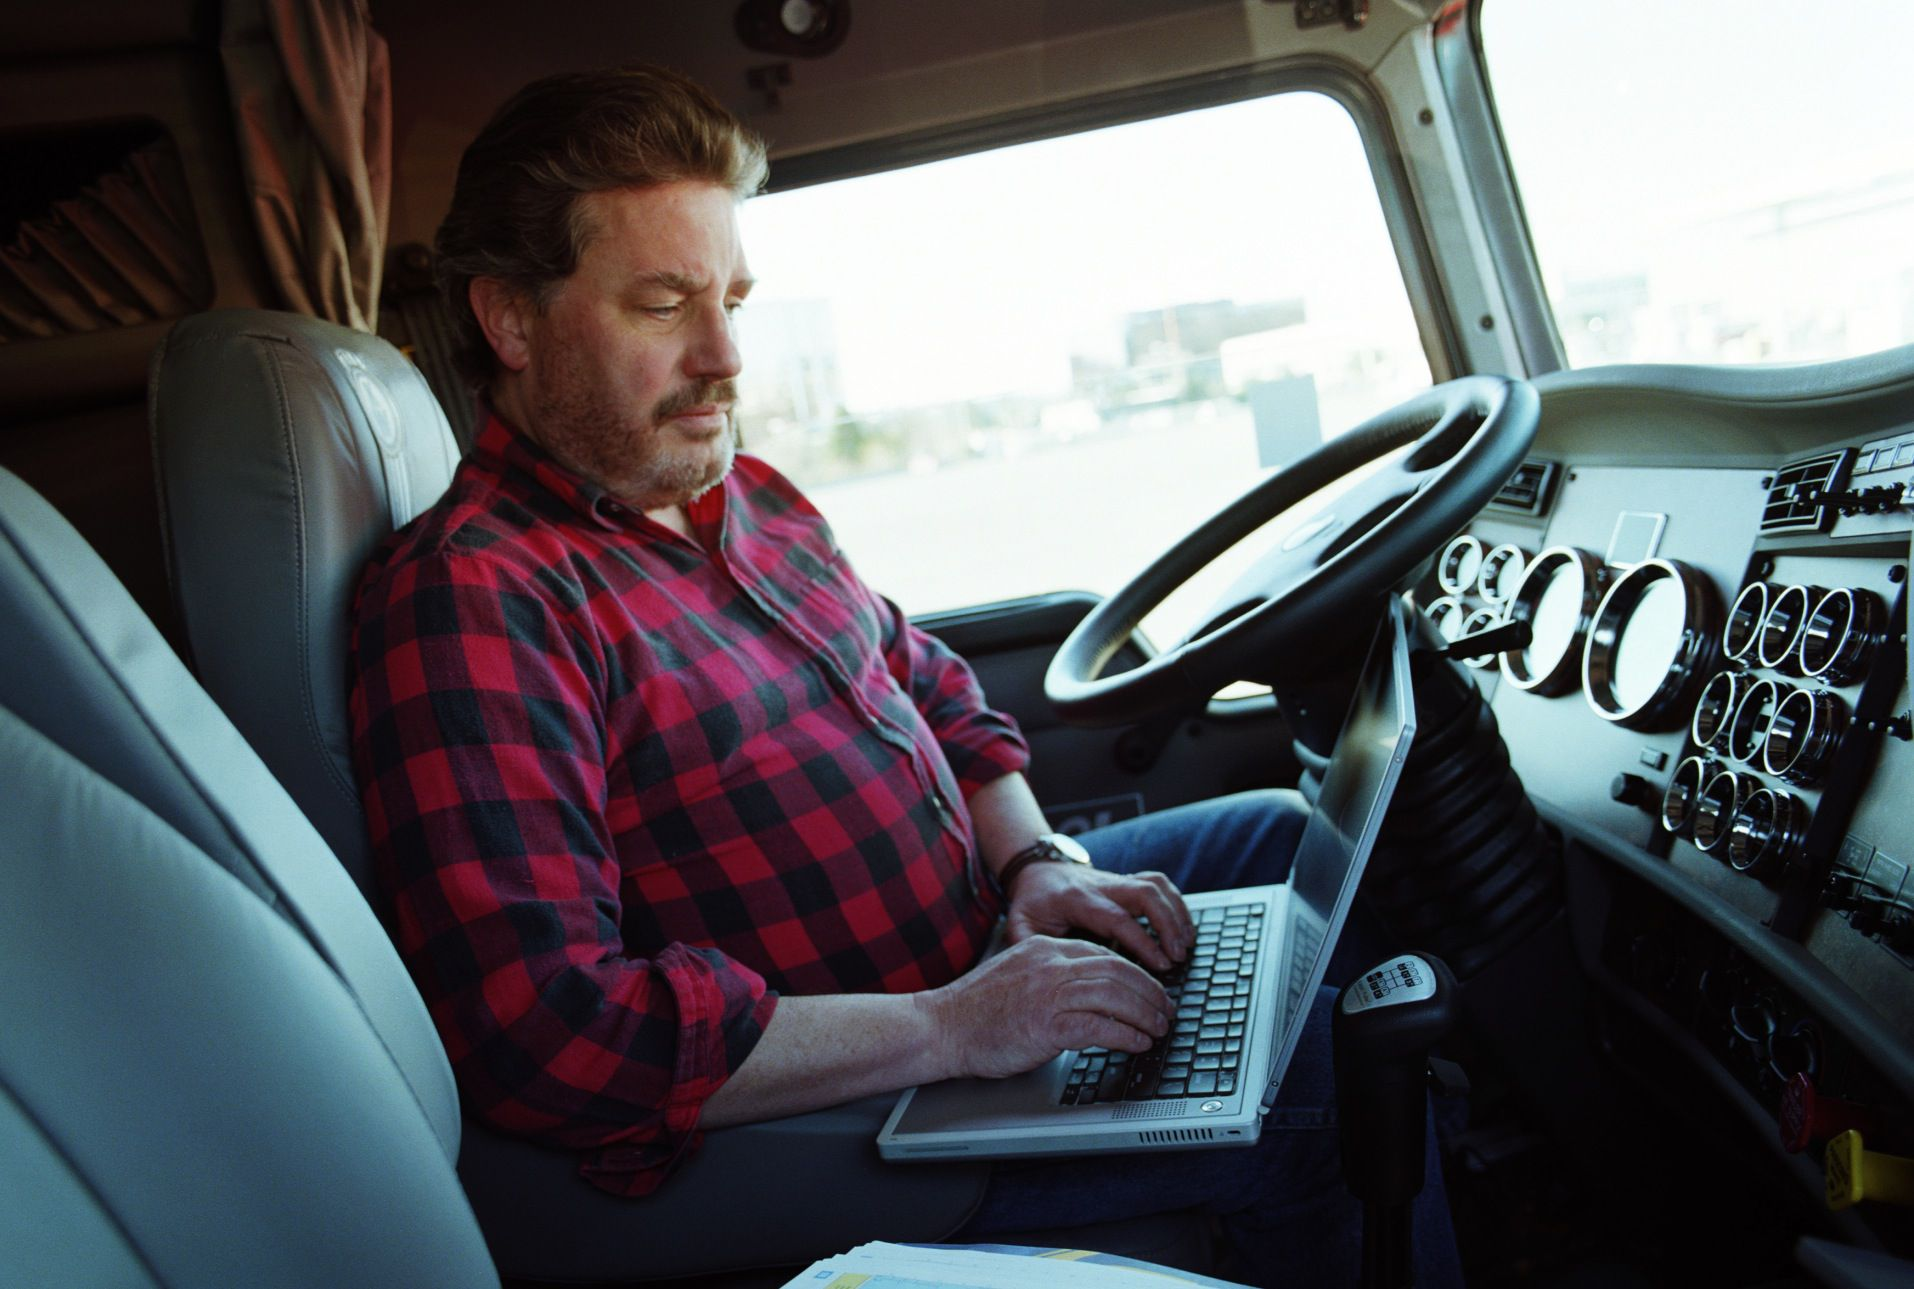 Follow a typical day for a truck driver